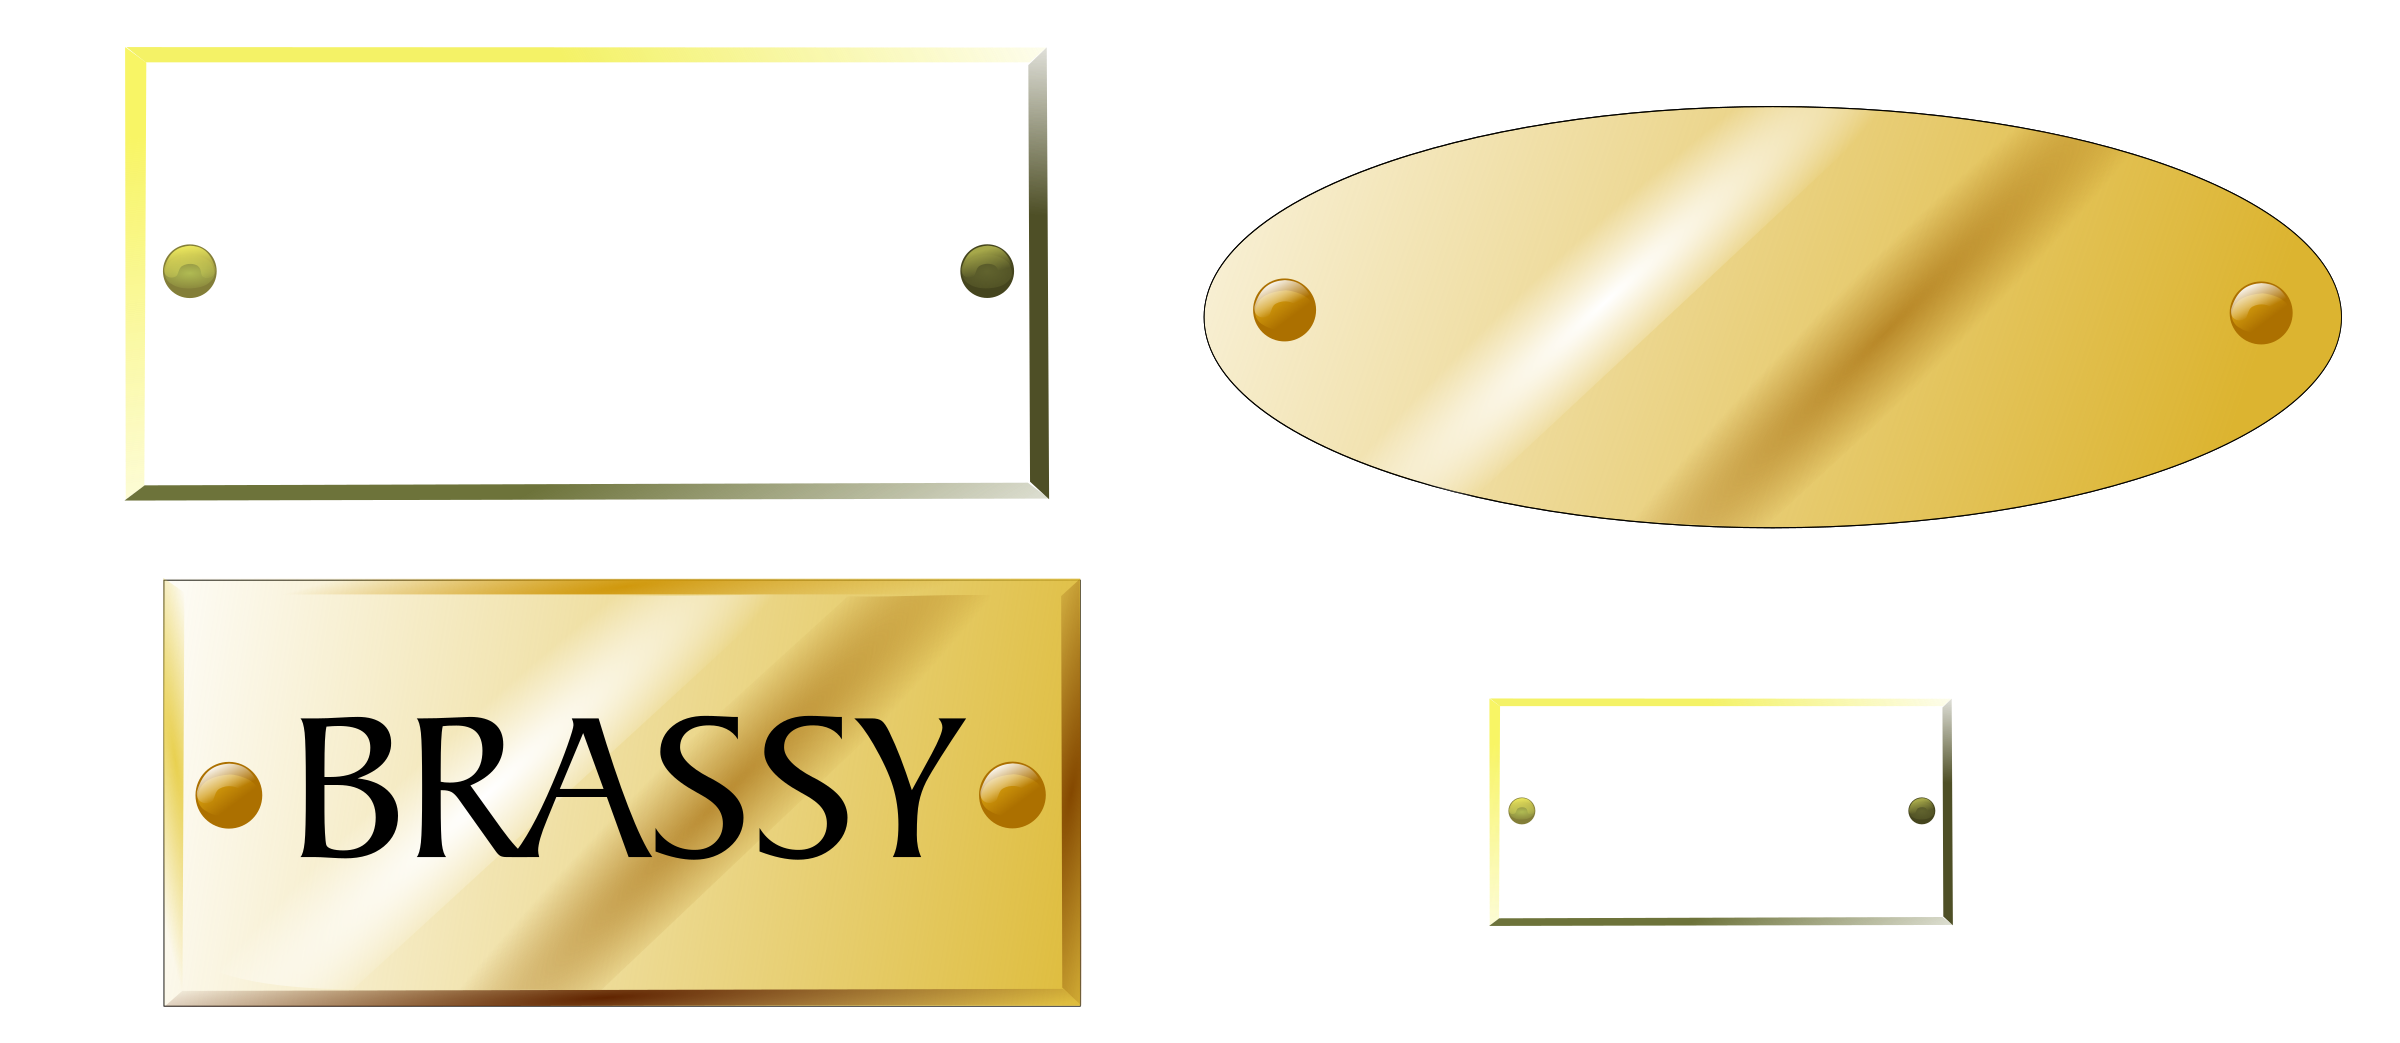 Brass plaques, tags by Raker Tooth